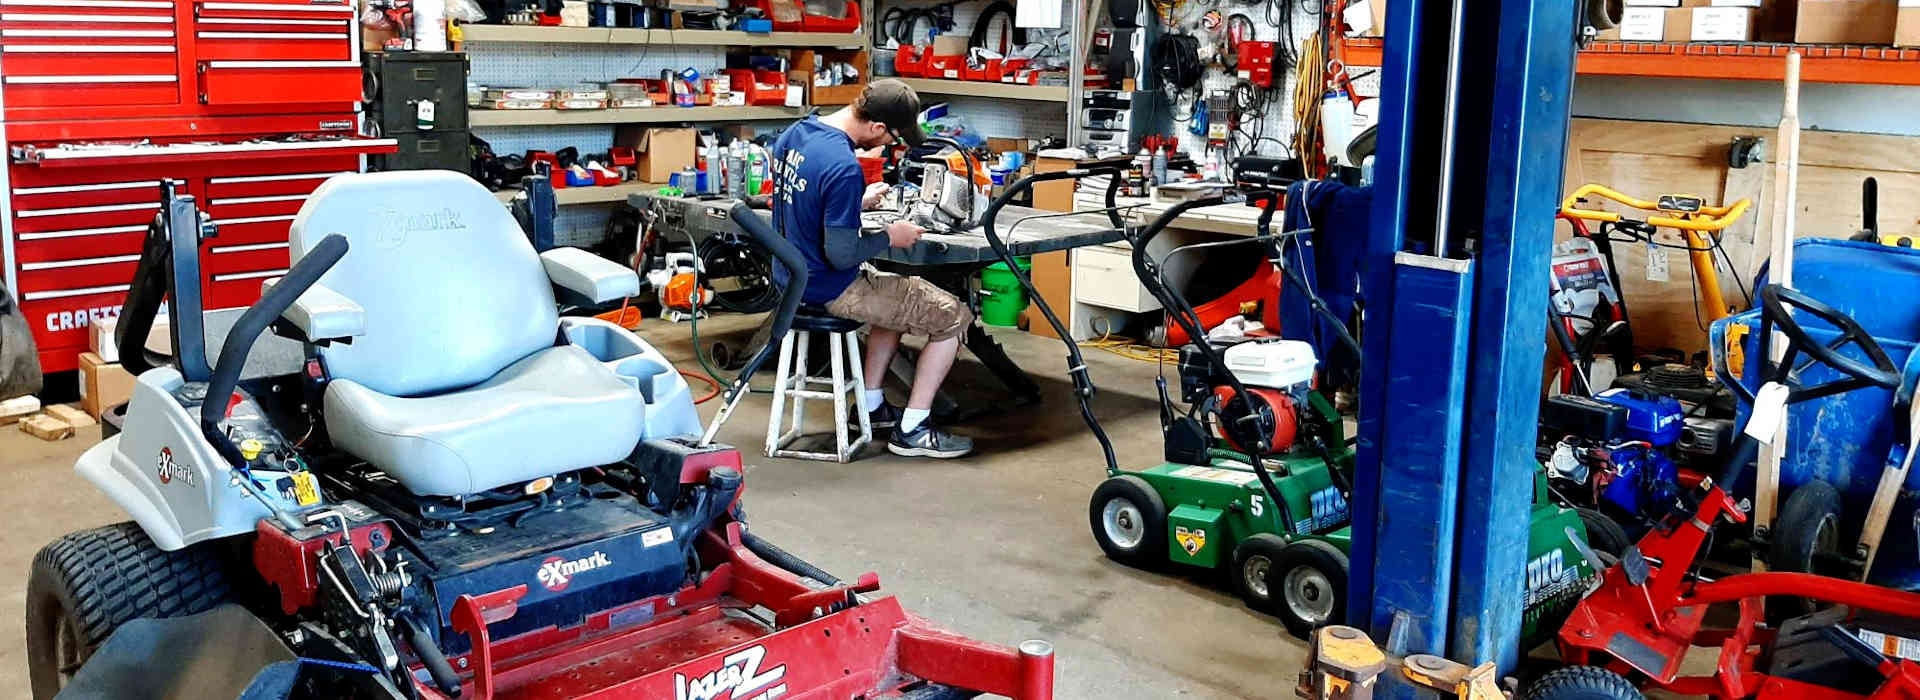 Get your Equipment Serviced or Repaired in South St. Paul MN, St. Paul, Eagan, West St. Paul, Inver Grove Heights, Woodbury, Cottage Grove MN